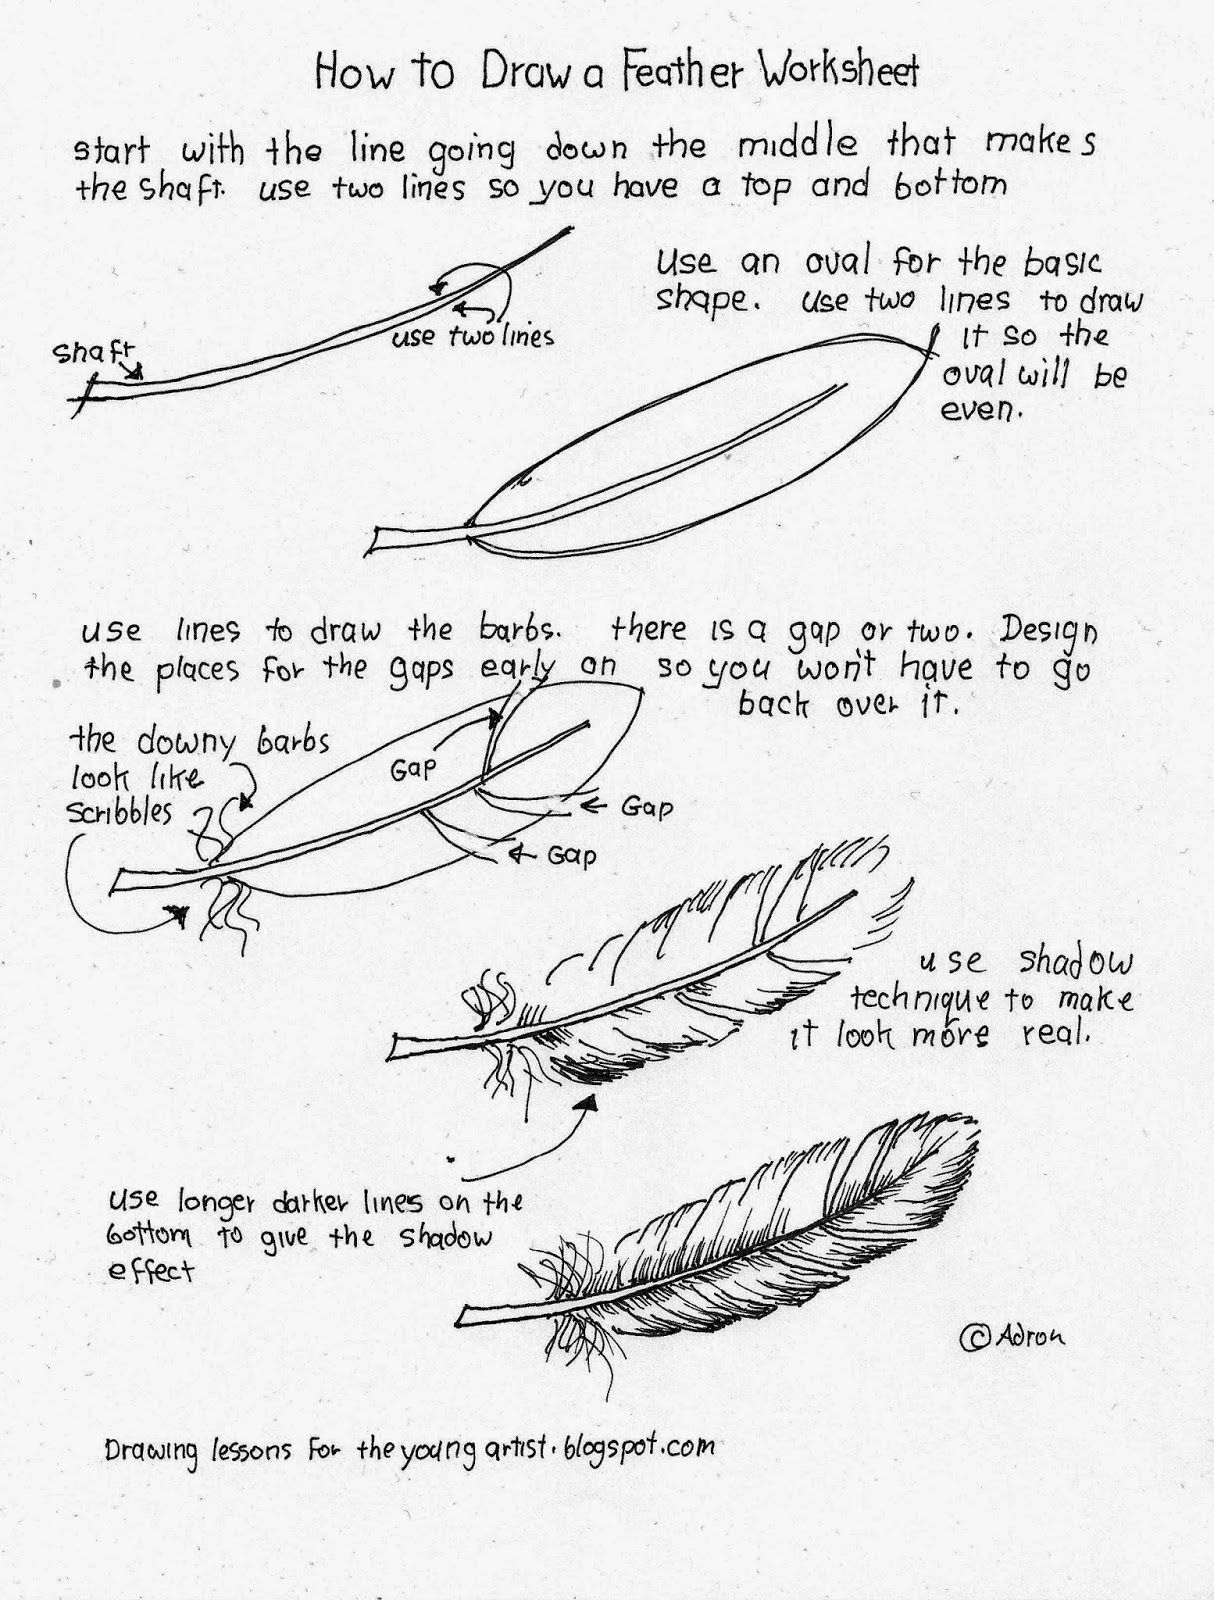 How To Draw A Feather Free Worksheet